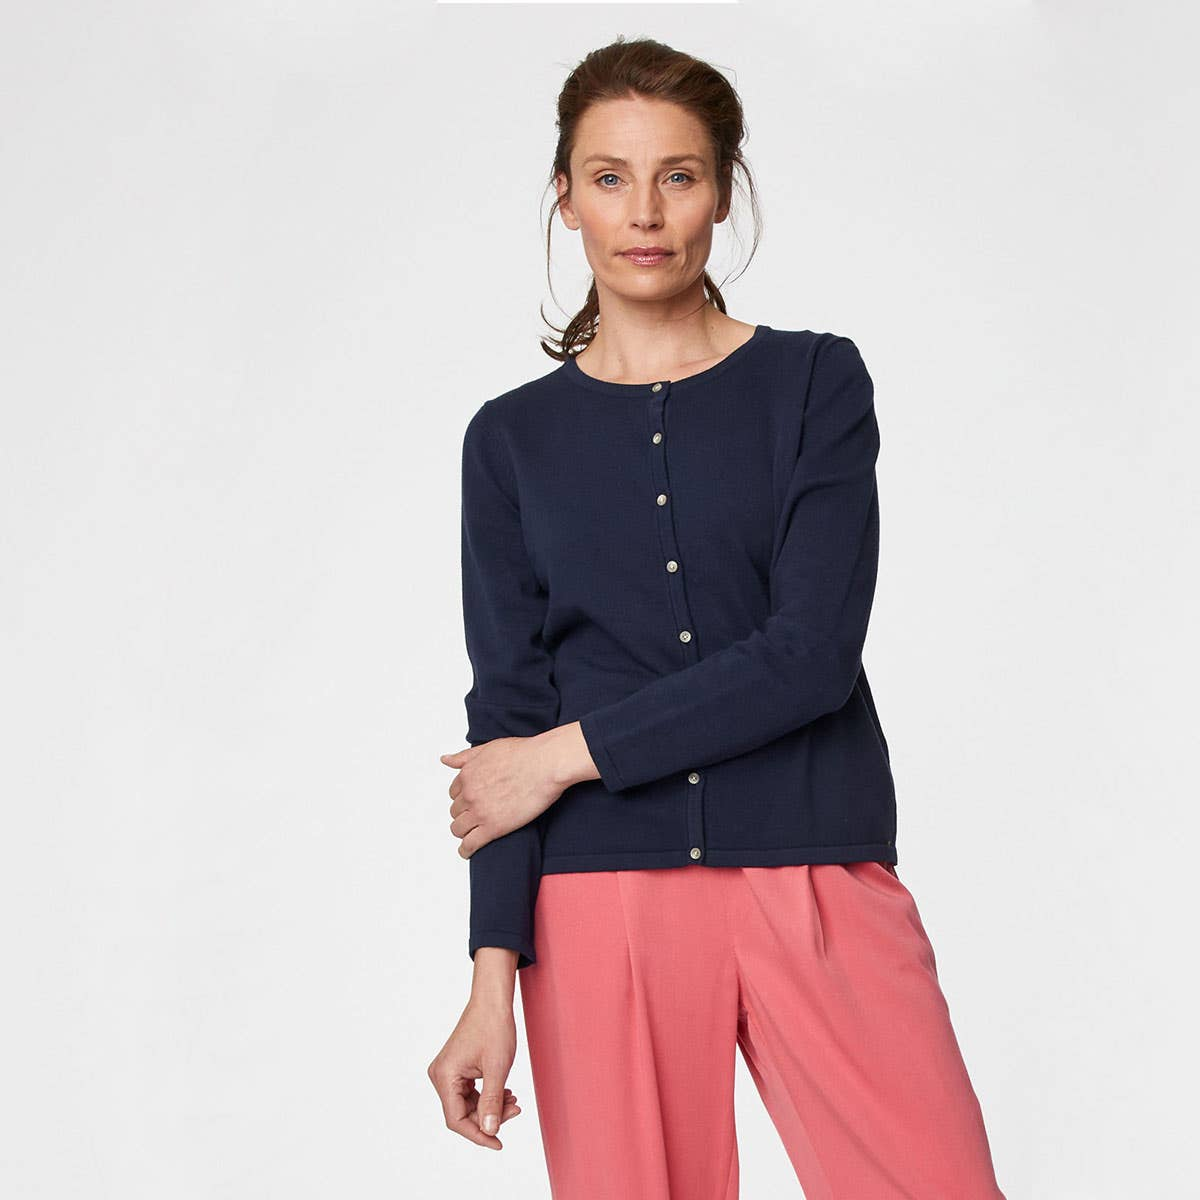 Thought Organic Cotton Navy Bodil Cardigan Size 16